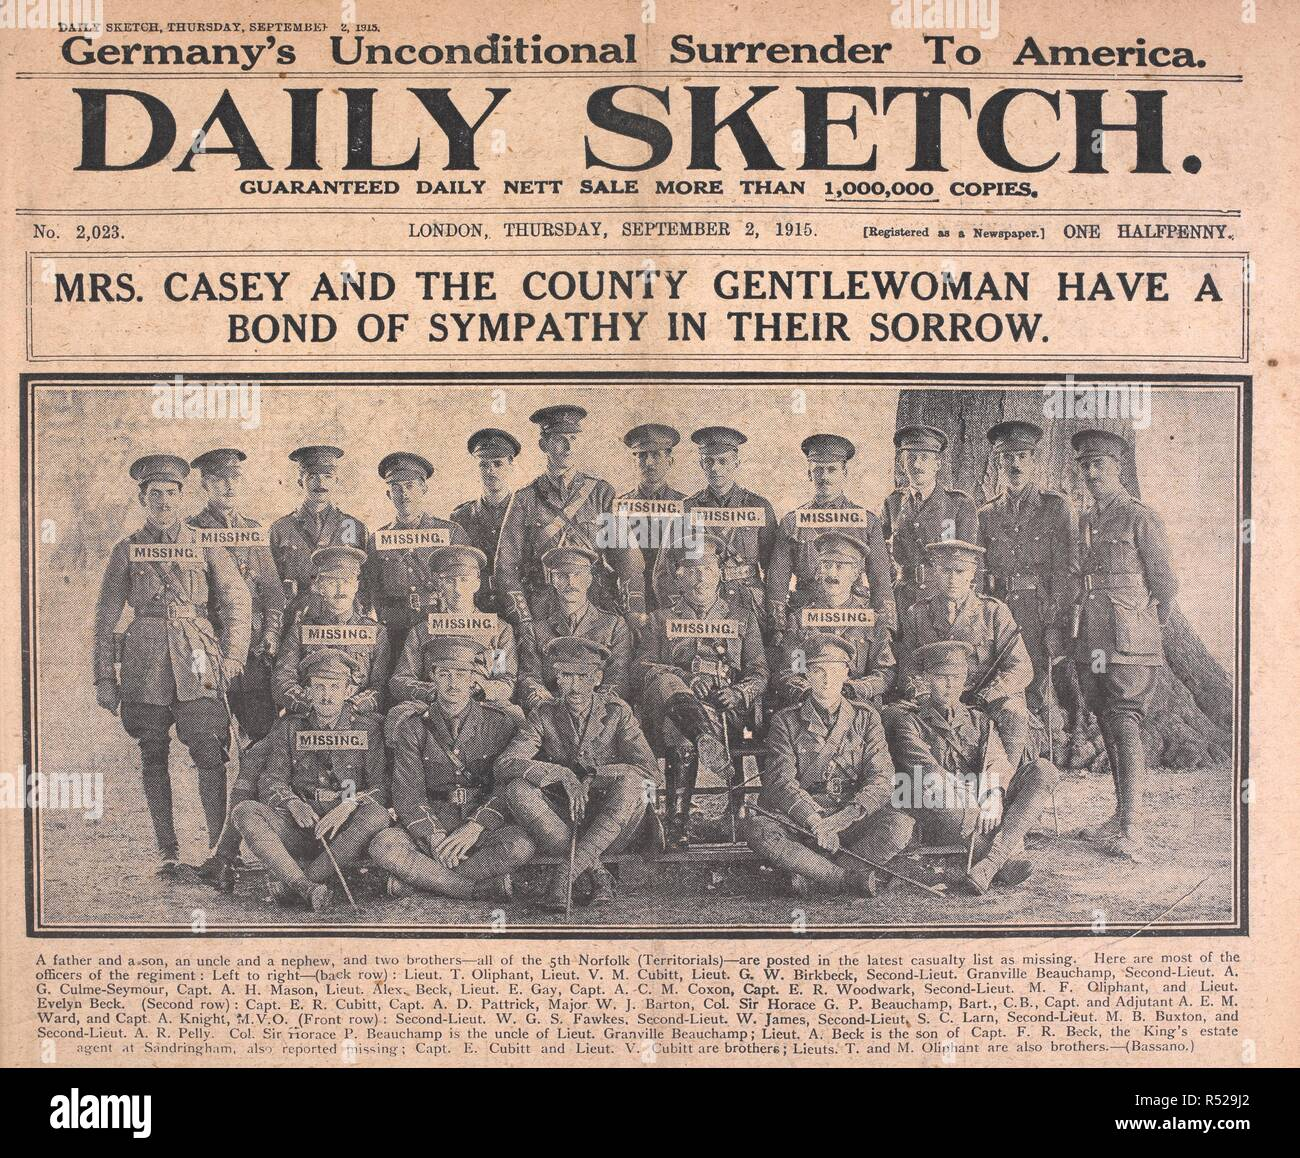 'Mrs Casey and the county gentlewoman have a bond of sympathy in their sorrow.'  A group photograph of the 5th Norfolk (territorials) regiment, showing how many are missing in action. Daily Sketch. London, 1915. Source: Daily Sketch, 2 September 1915, front page. Author: BASSANO. - Stock Image